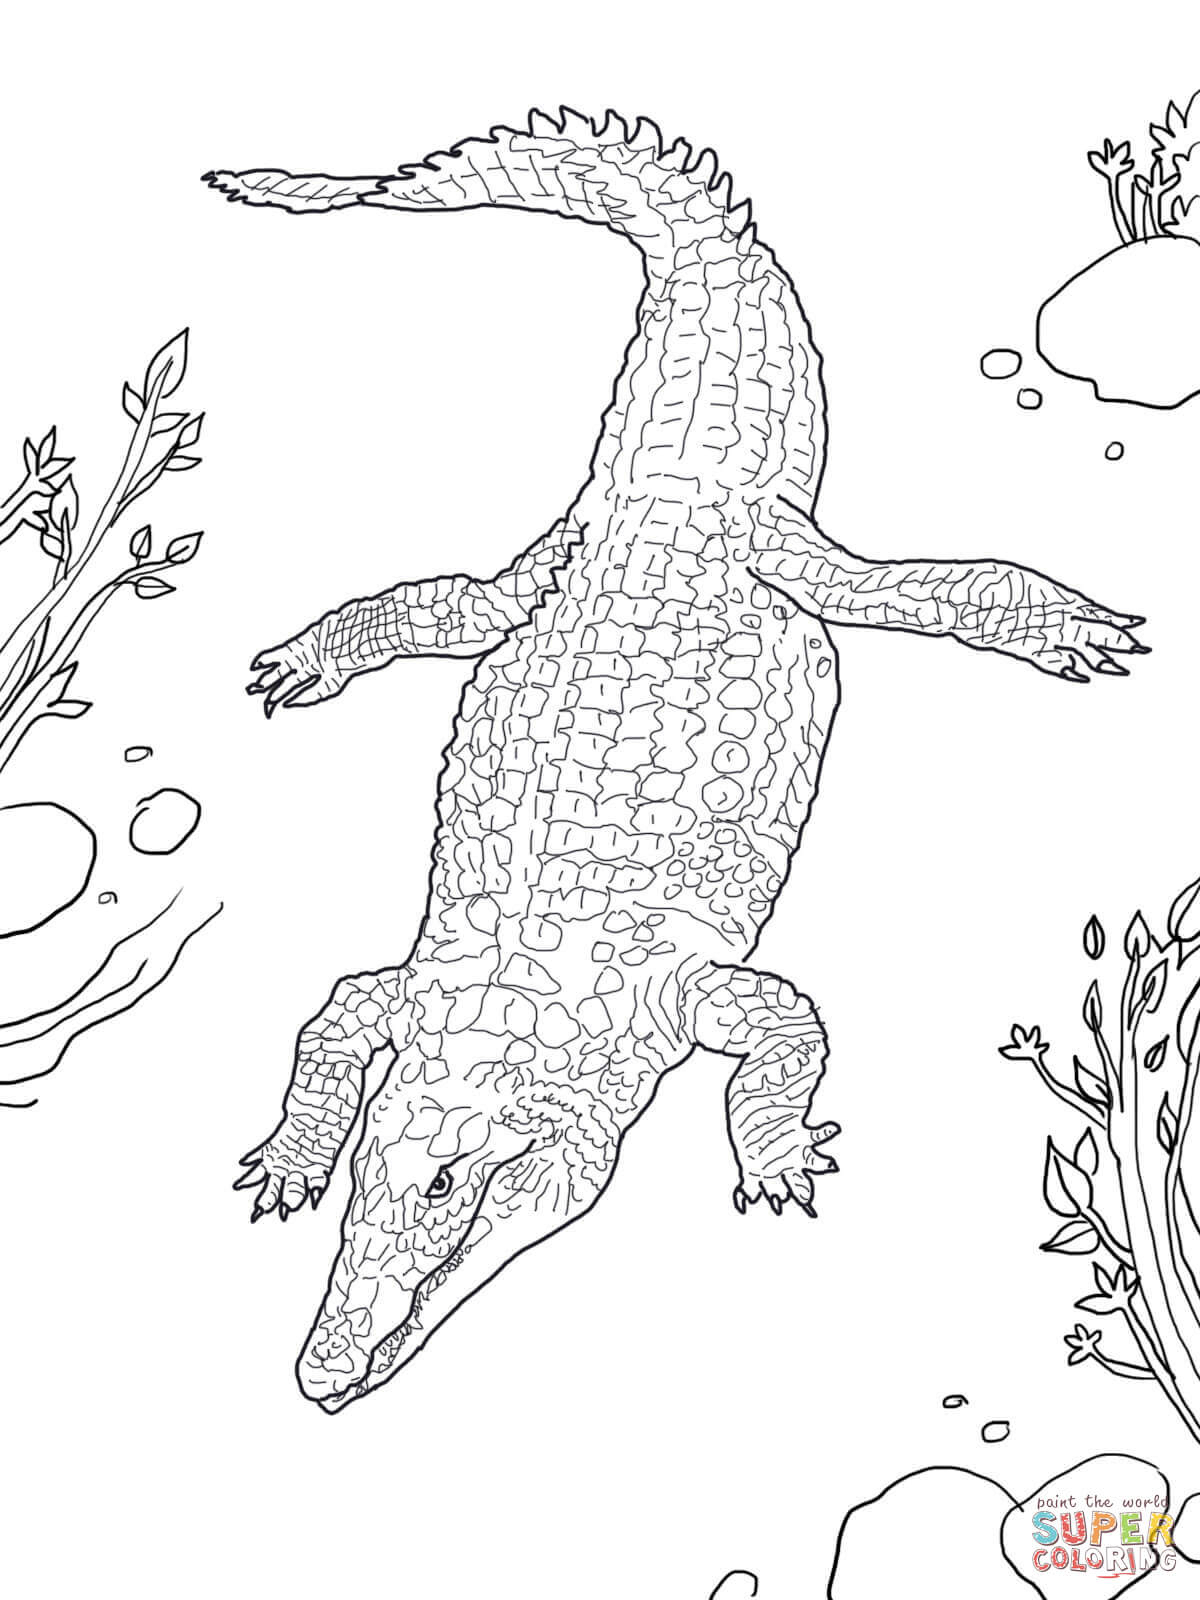 Nile Crocodile Coloring Page | Free Printable Coloring Pages - Free Printable Pictures Of Crocodiles